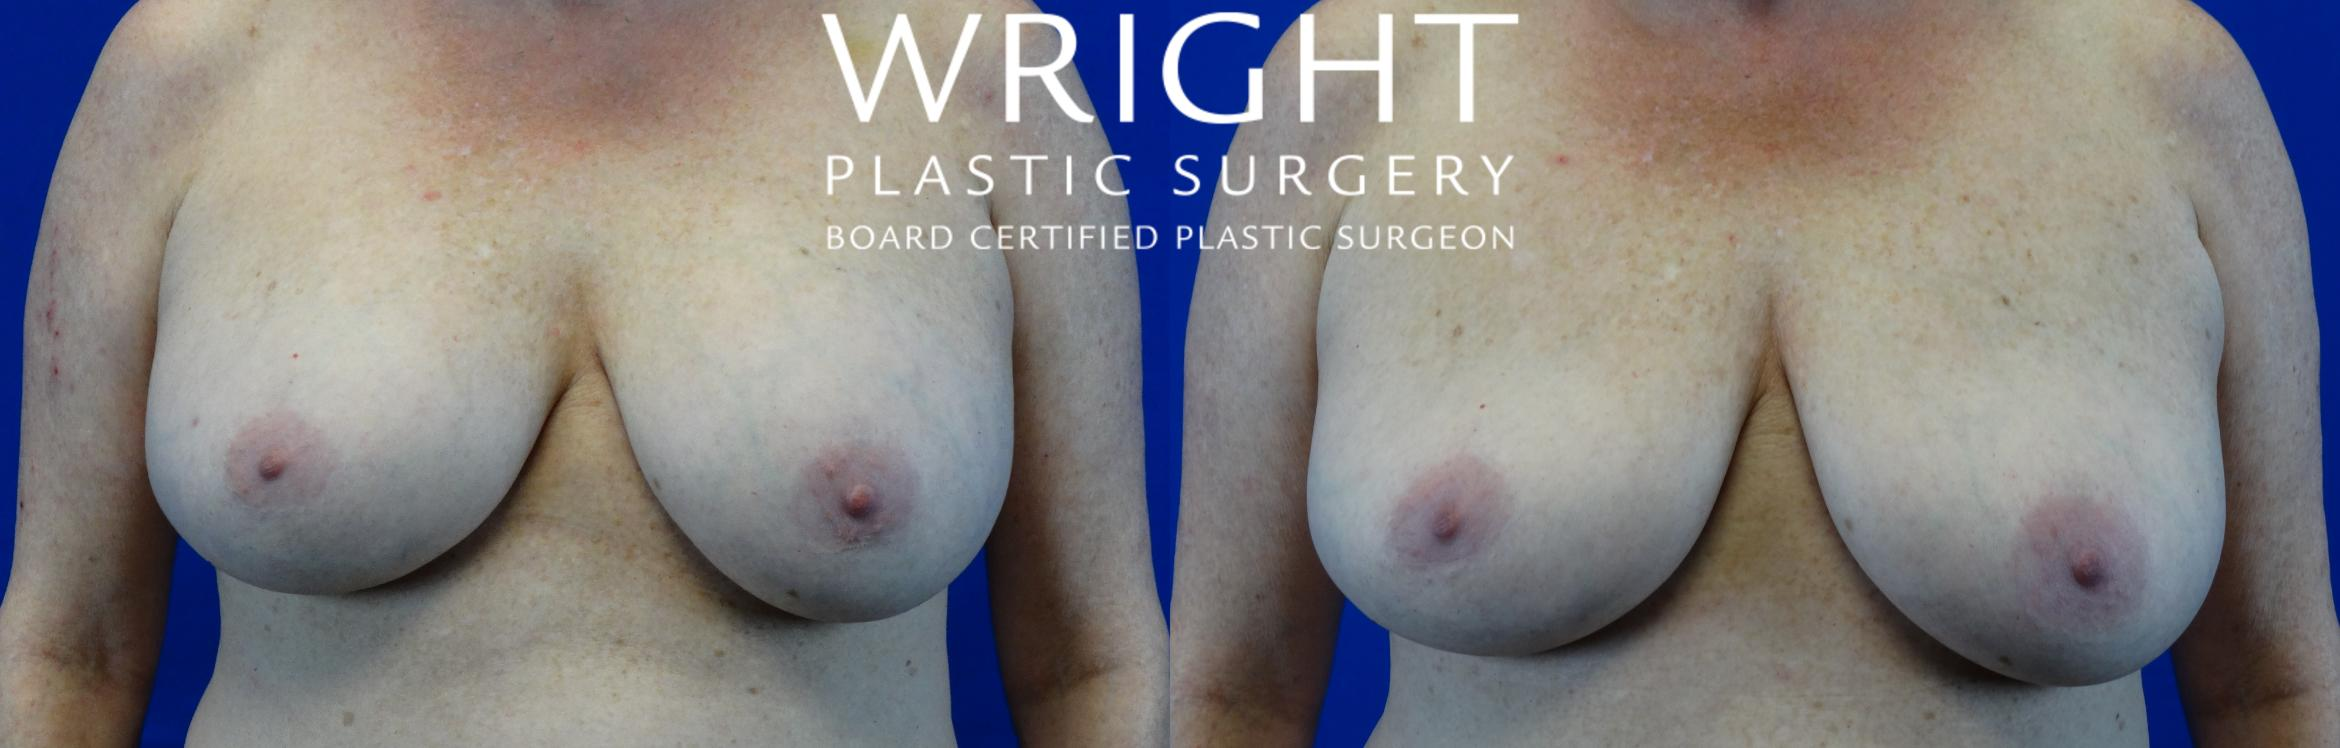 Breast Implant Removal Case 11 Before & After Front | Little Rock, Arkansas | Dr. Wright Plastic Surgery